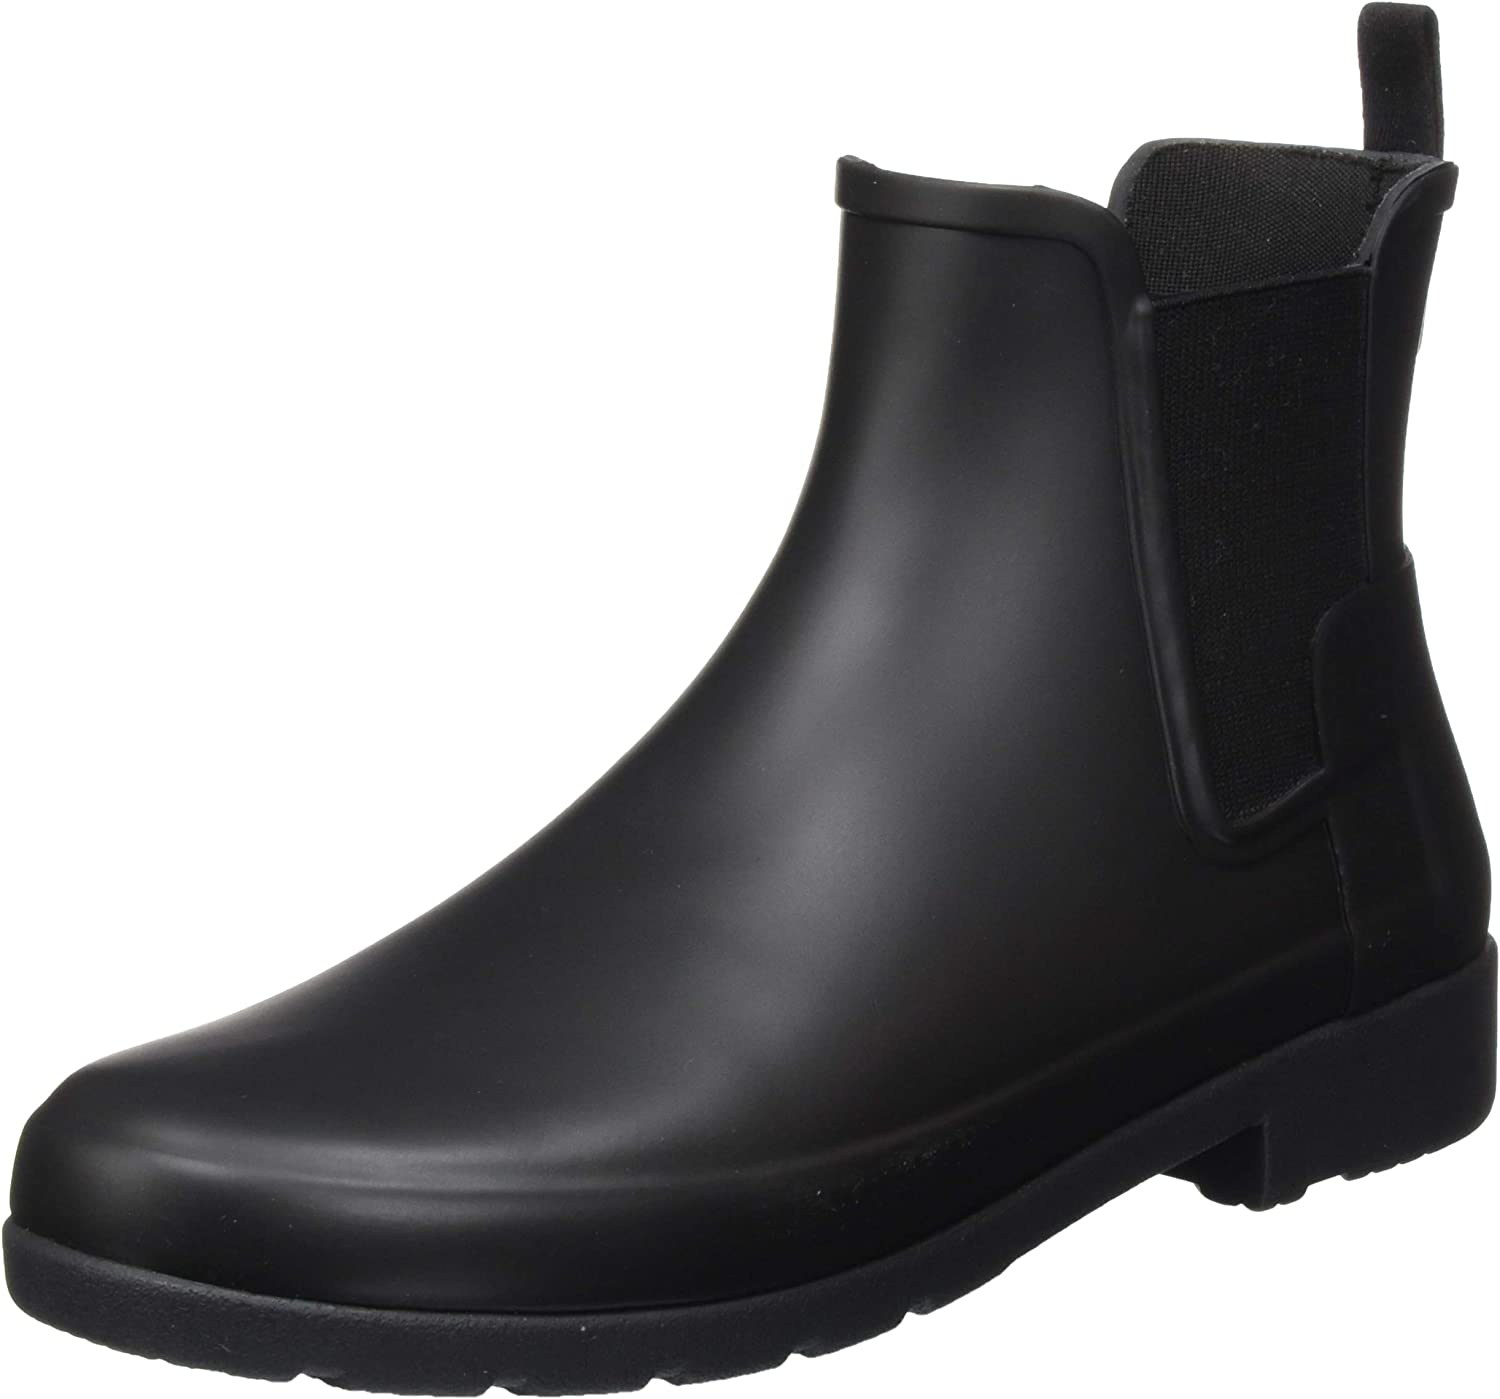 | HUNTER Women's Original Refined Chelsea Boots | Rain Footwear